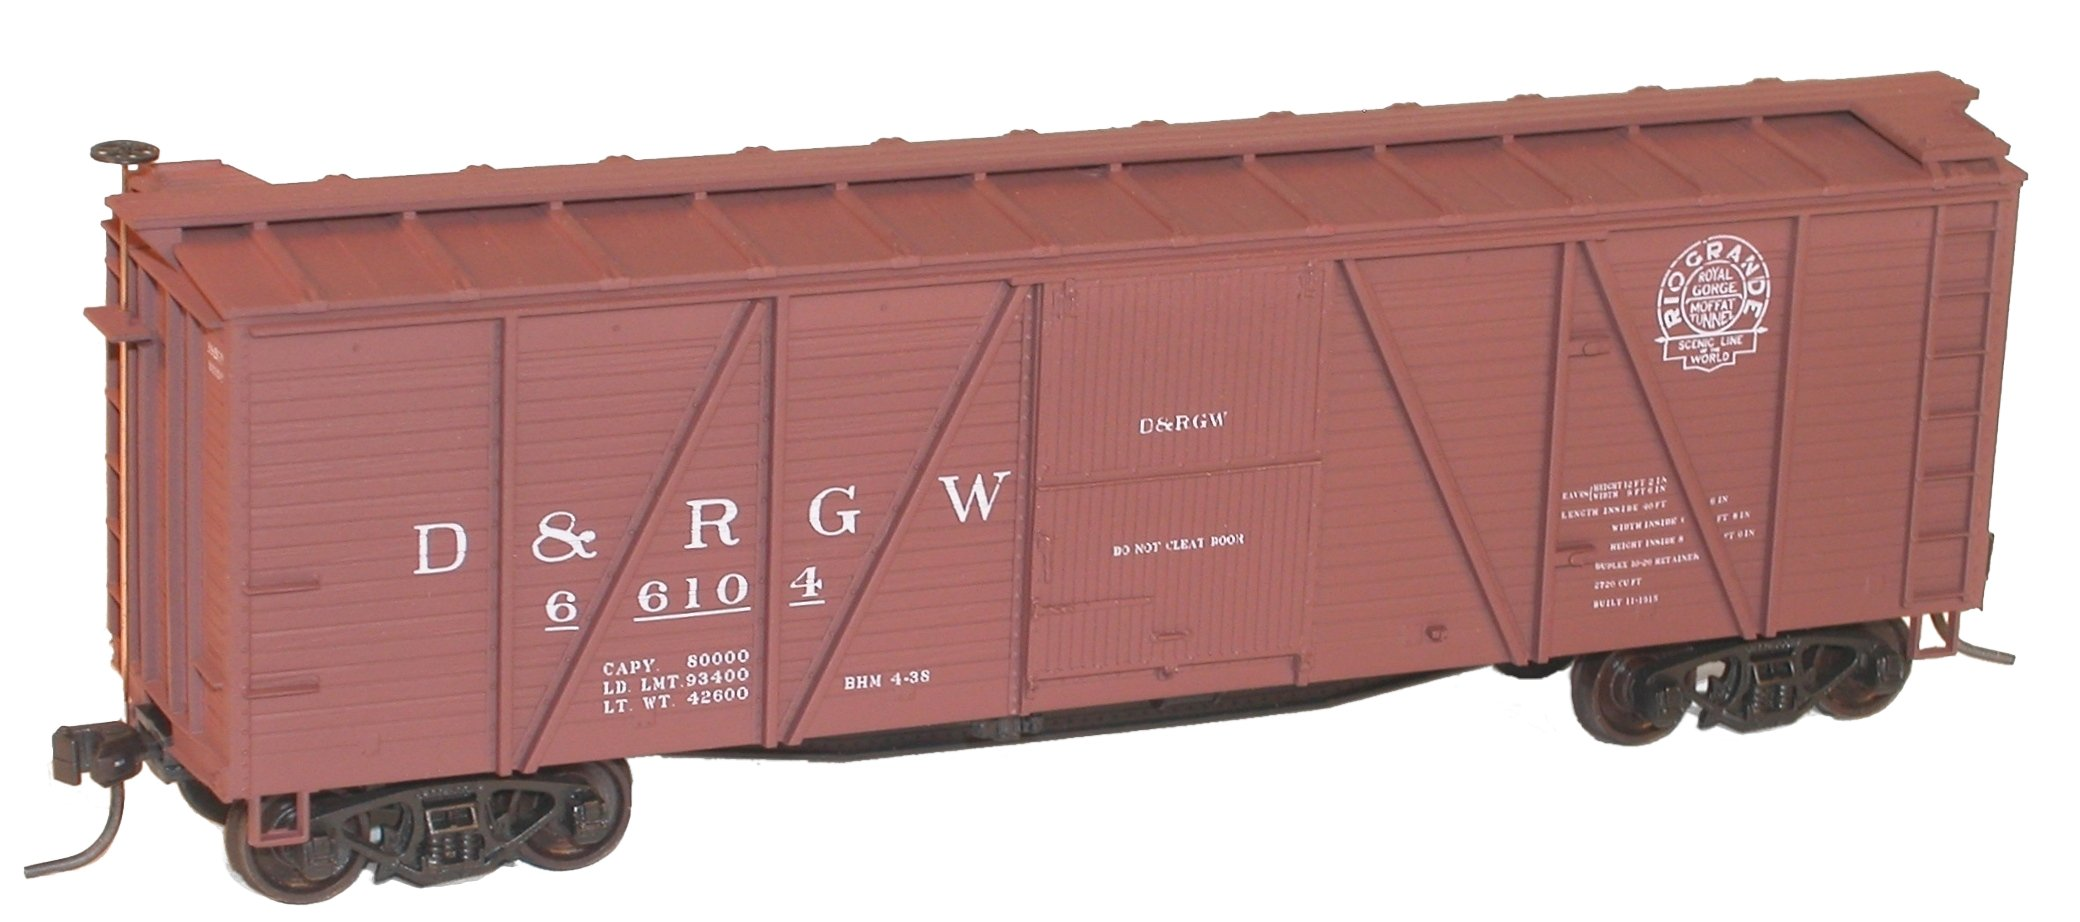 Car With Road >> Welcome to Digital Fox - Denver & Rio Grande Western 40' Double Sheath Wood Boxcars